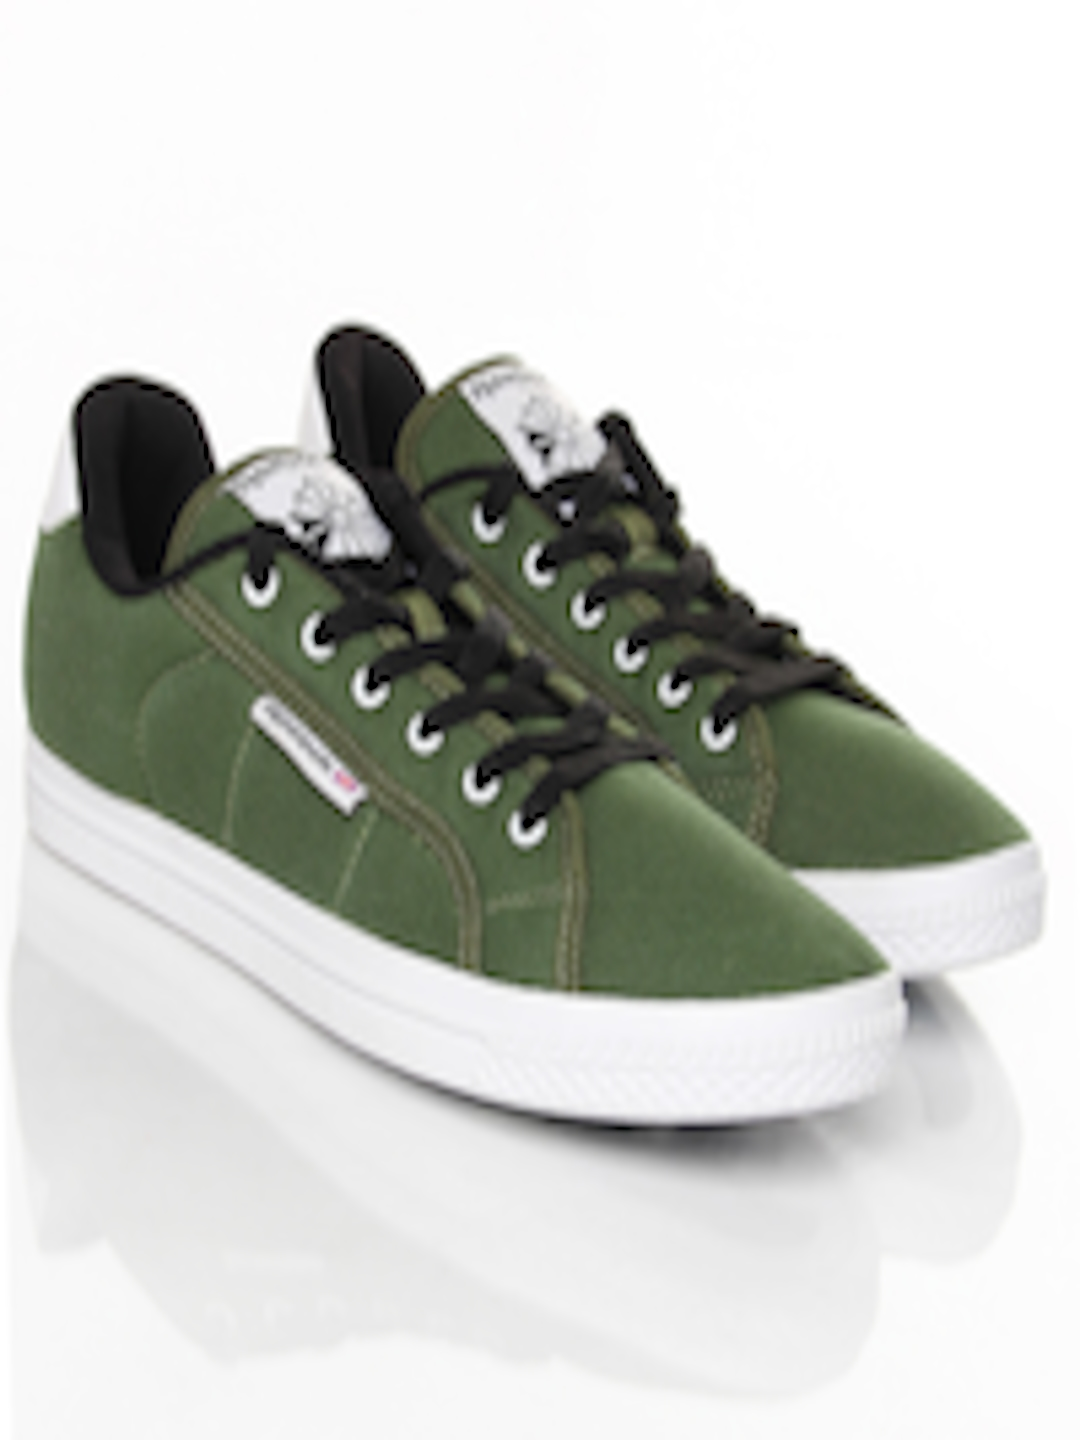 e5dd9a92e26 Buy Reebok Classic Men Olive Green On Court III LP Casual Shoes ...